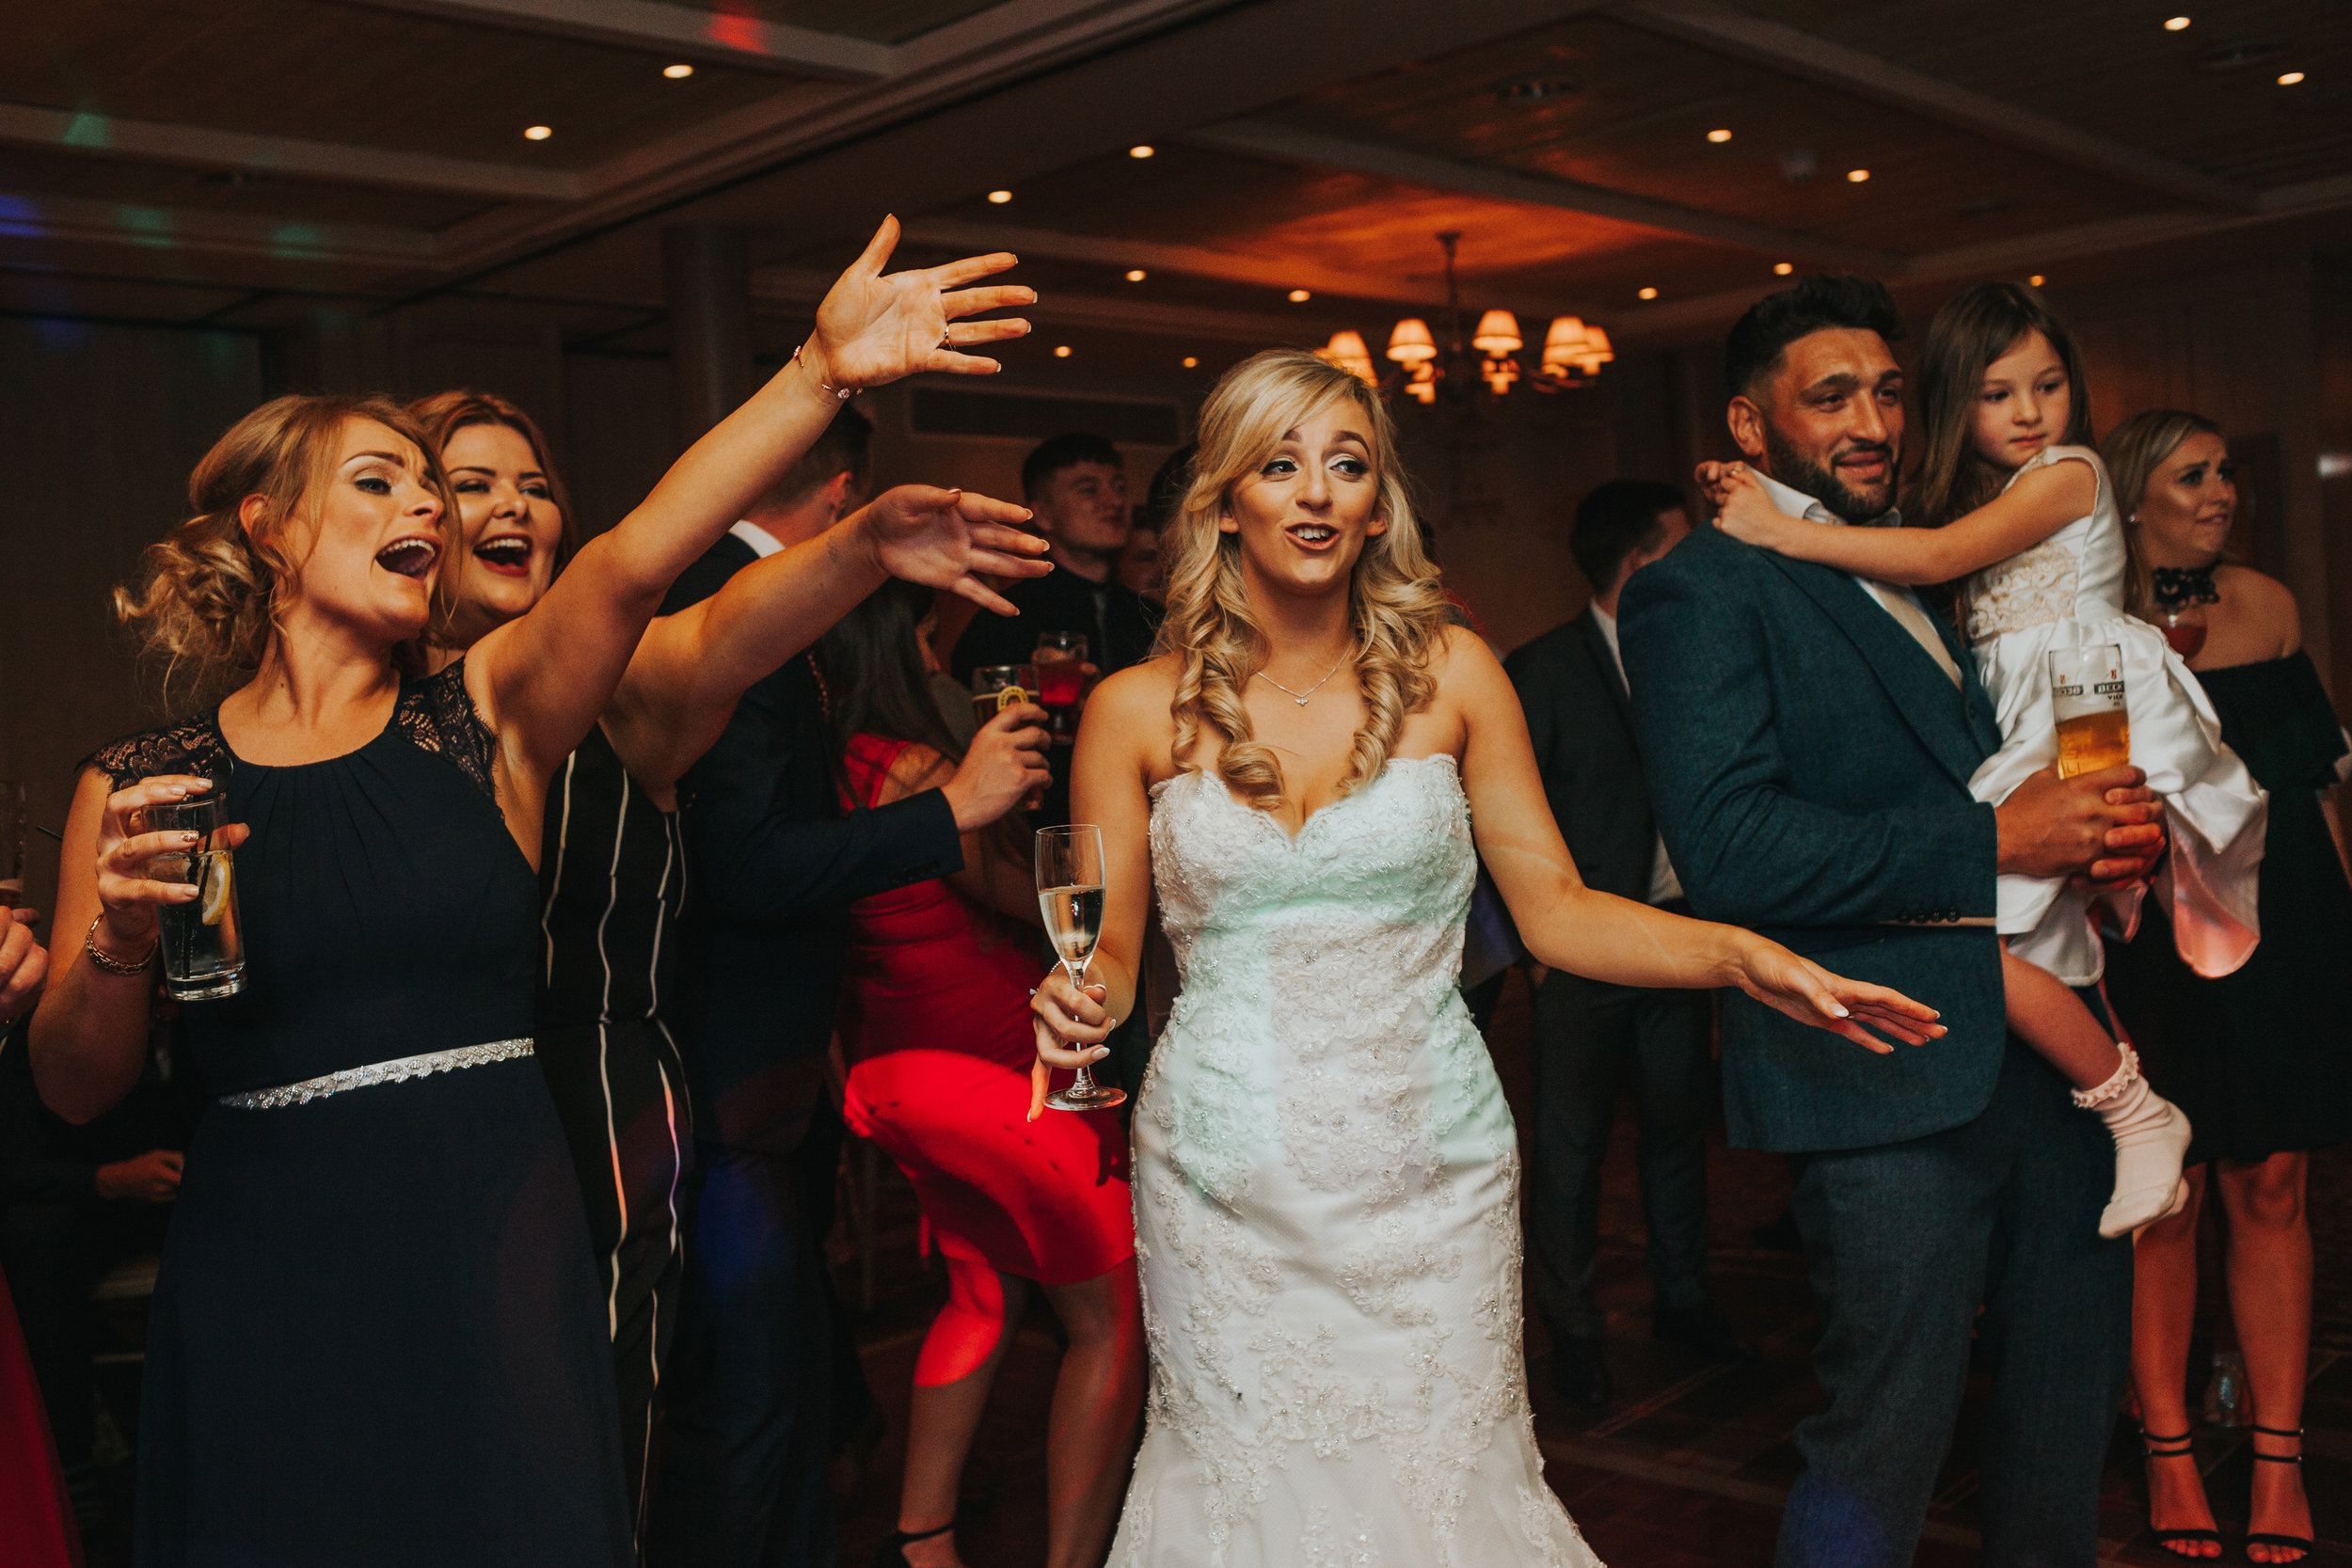 Bride dancing with guests.